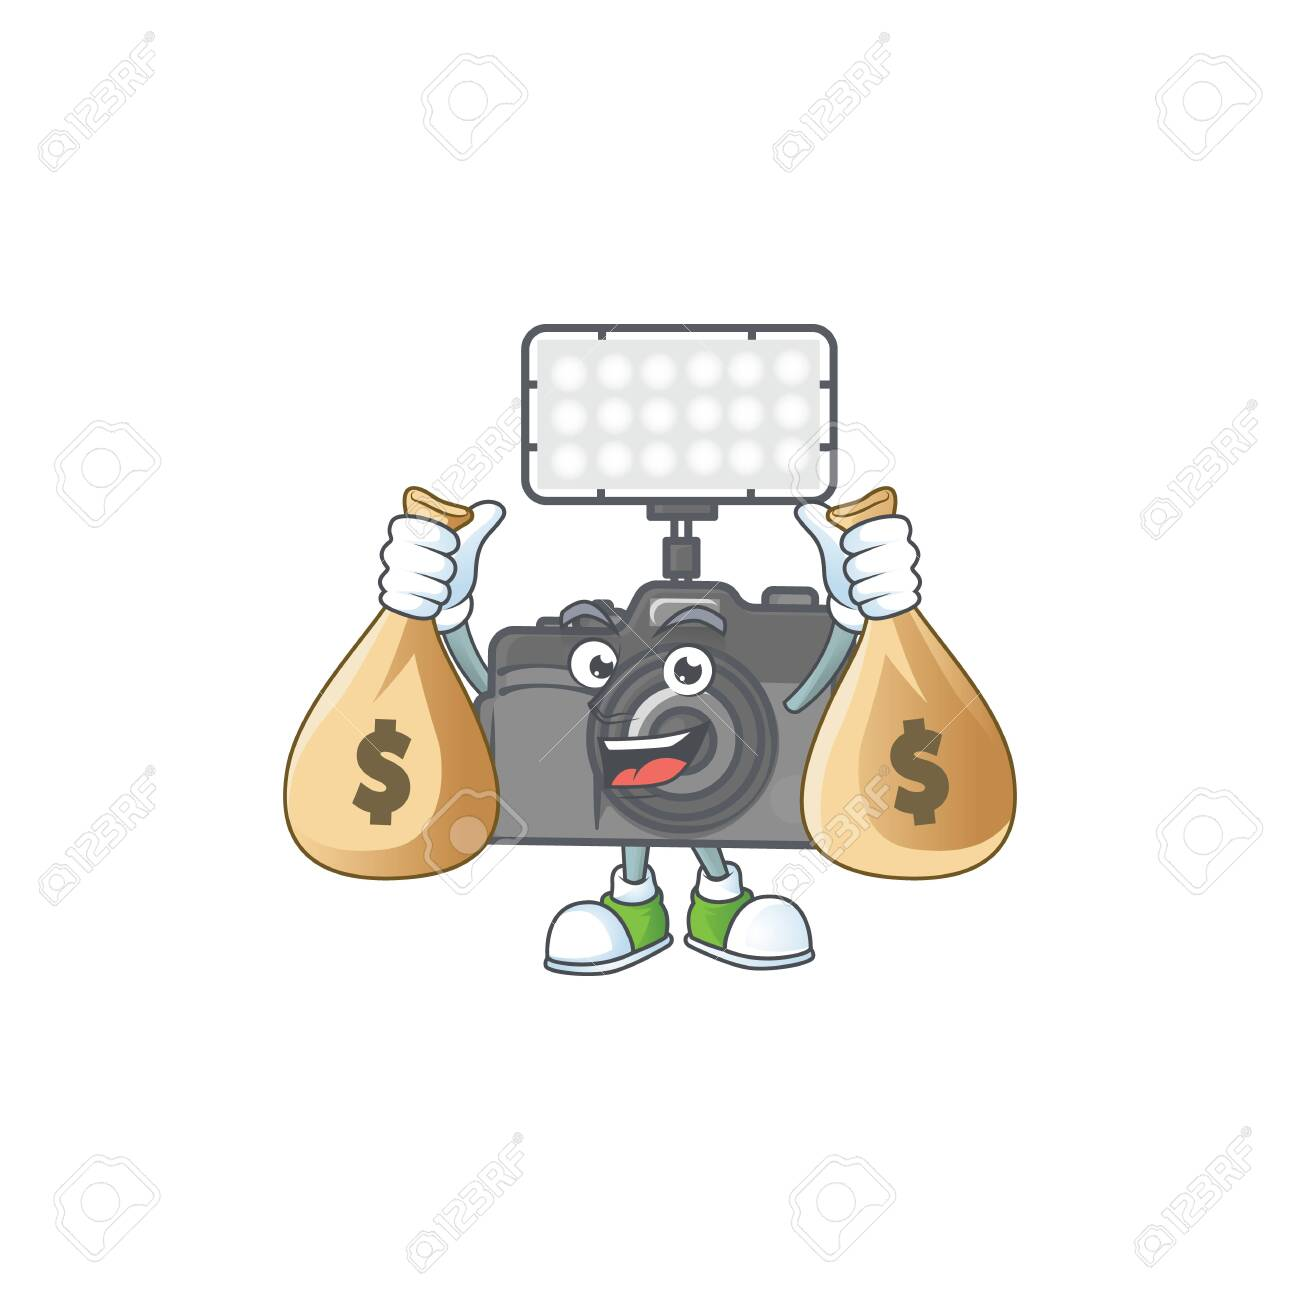 A cute image of photo camera with lighting cartoon character holding money bags. Vector illustration - 140179243